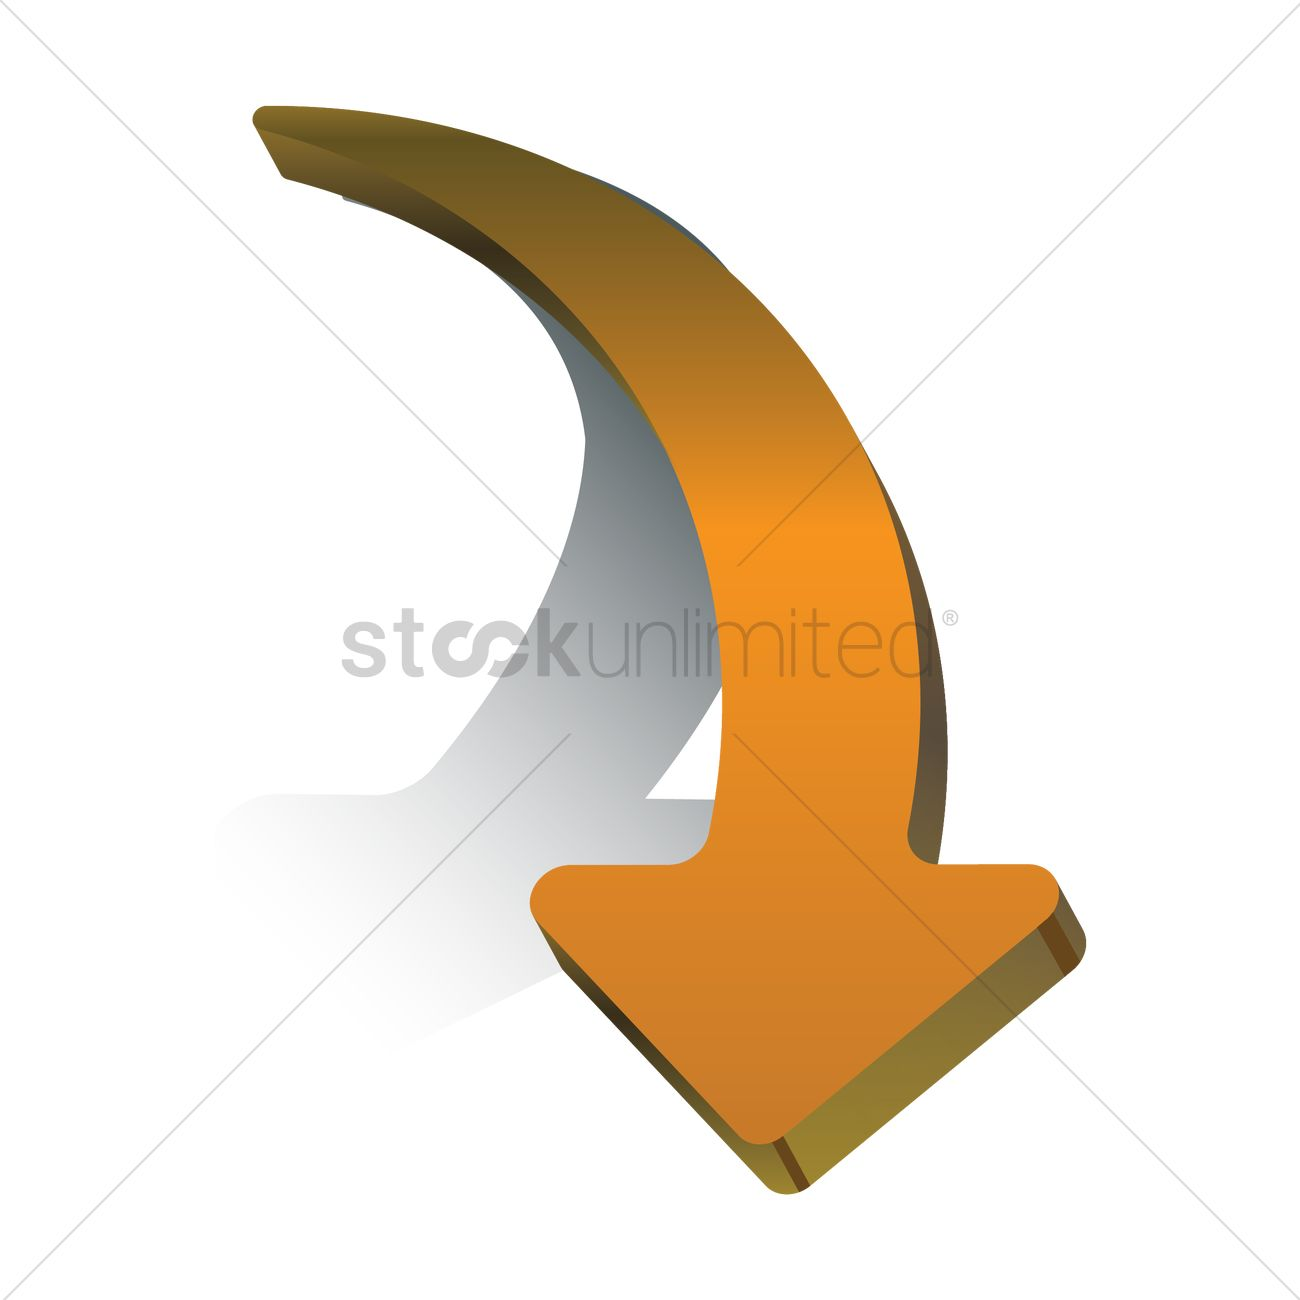 Right Curved Arrow Vector Graphic